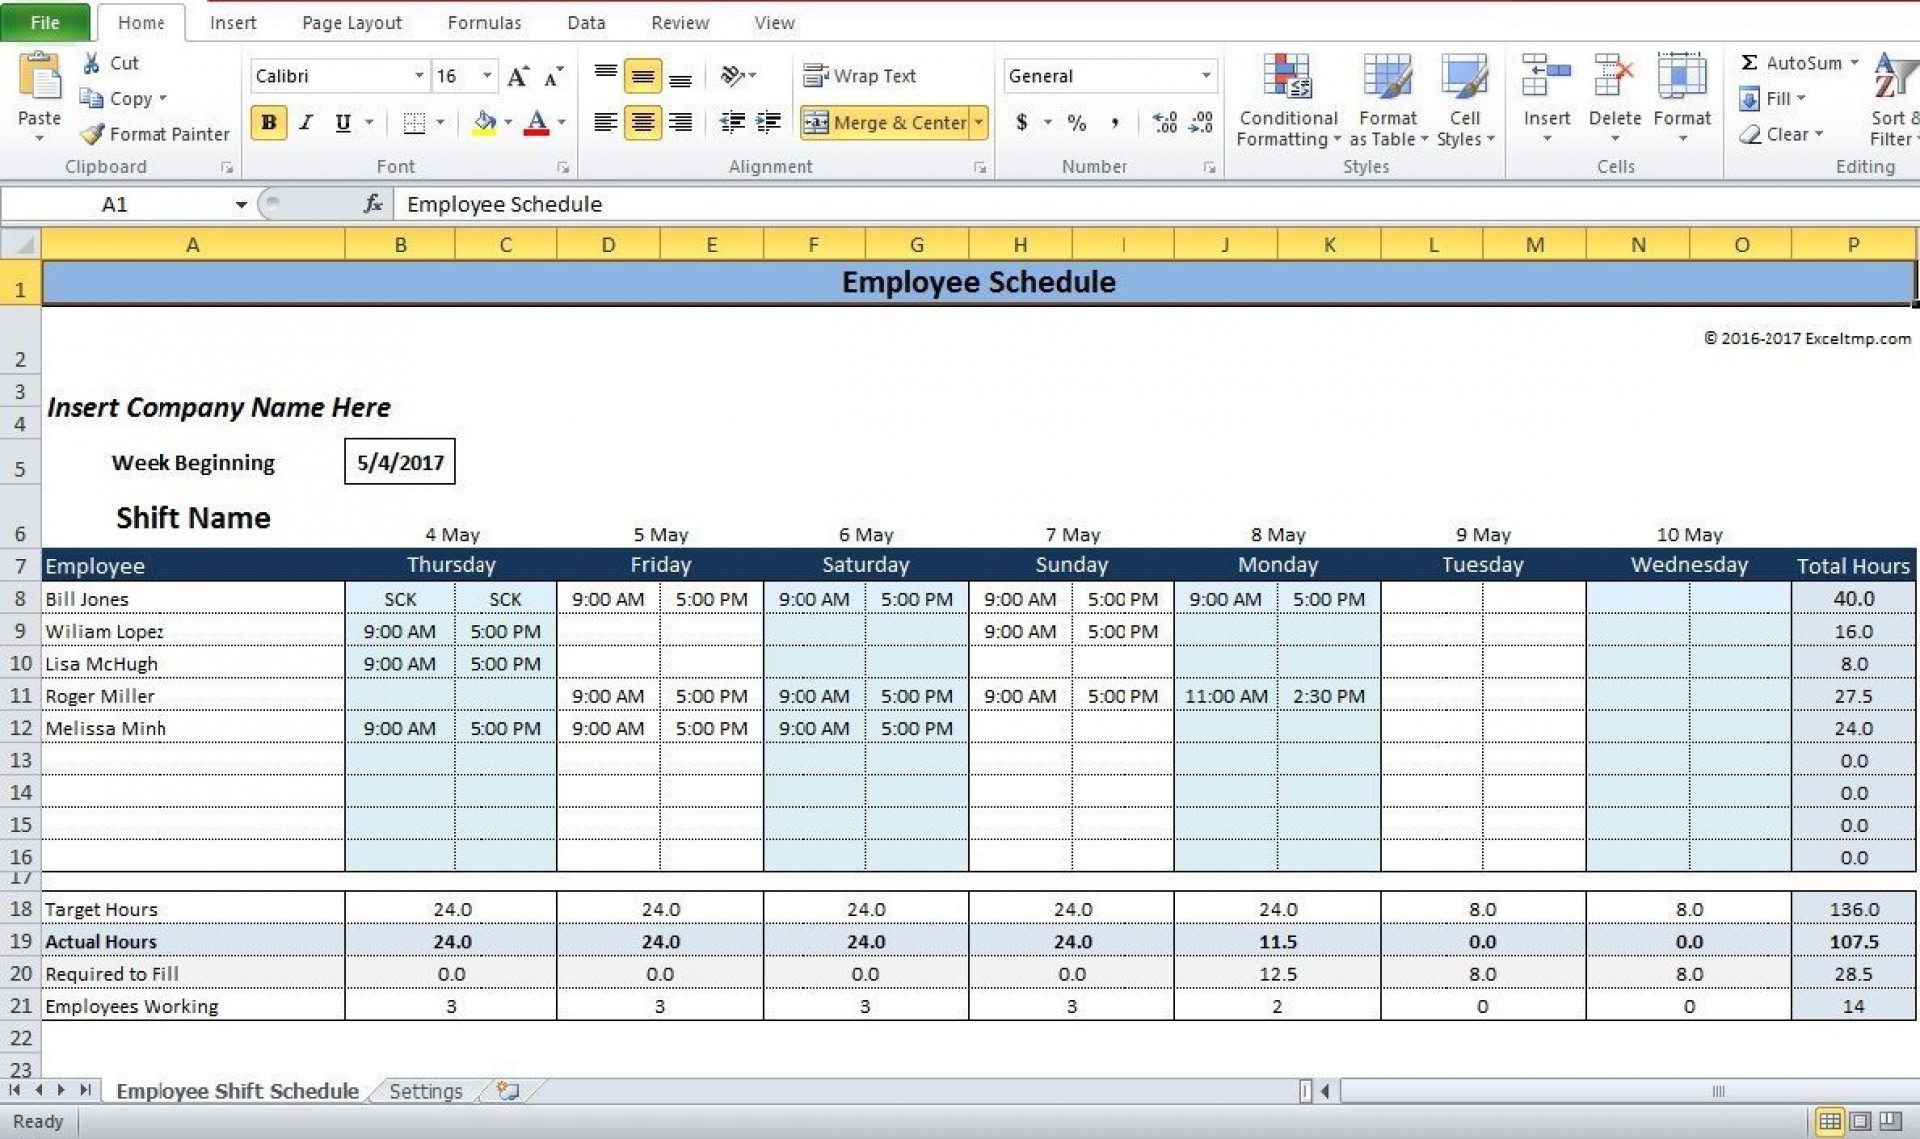 003 Marvelou Employee Shift Scheduling Template High Definition  Schedule Google Sheet Work Plan Word Weekly Excel Free1920